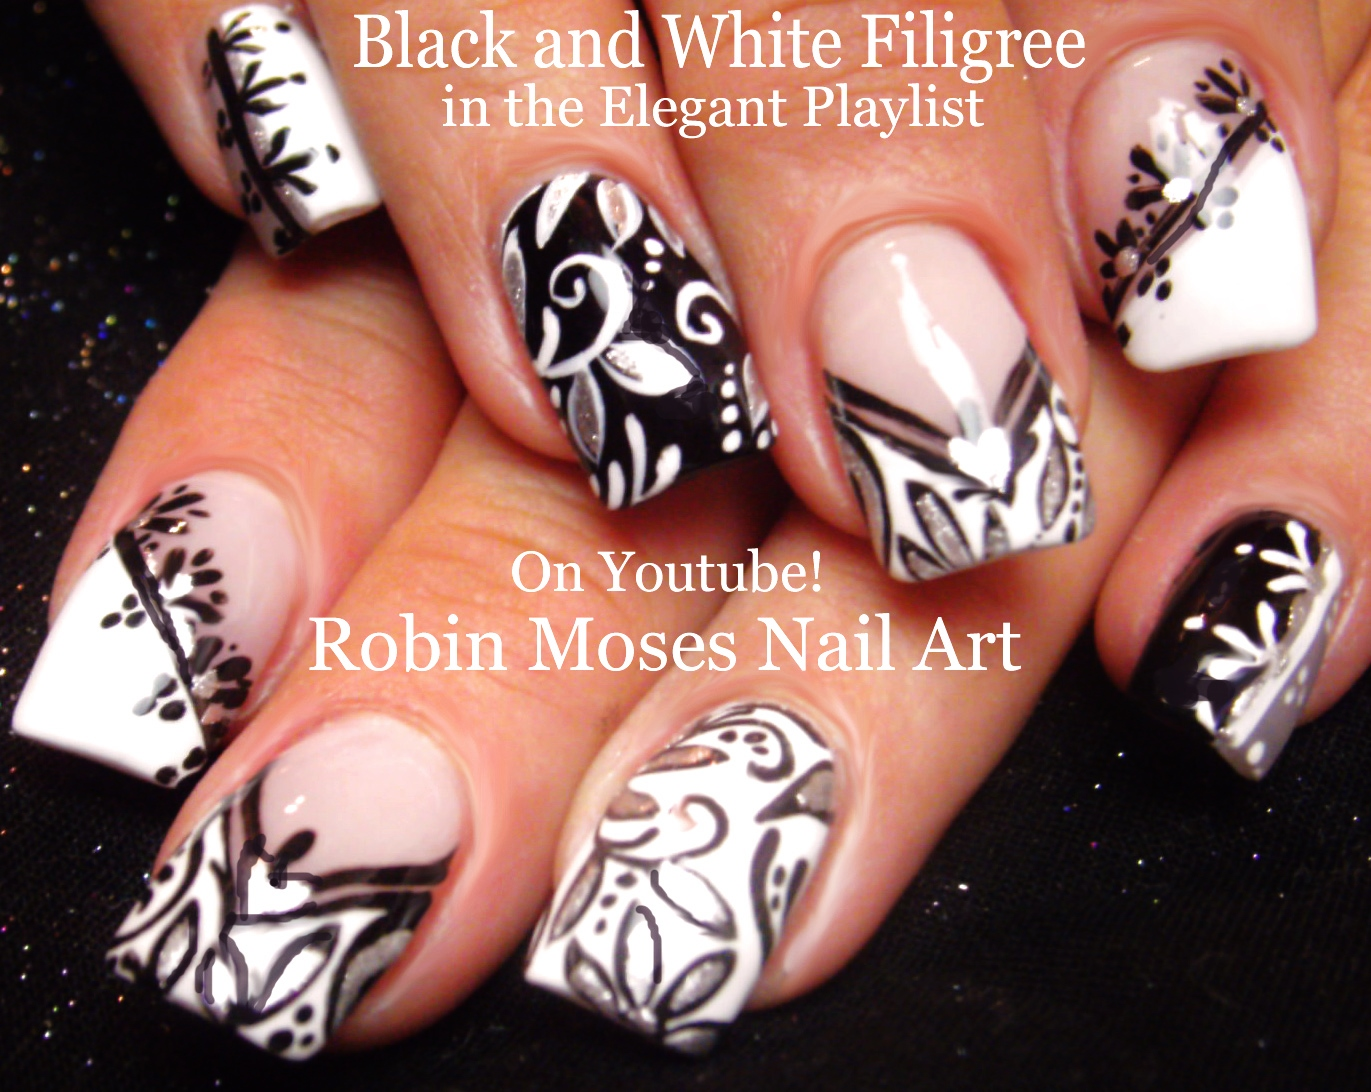 Nail Art By Robin Moses Sheer Matte Black Nails With Floral Lace